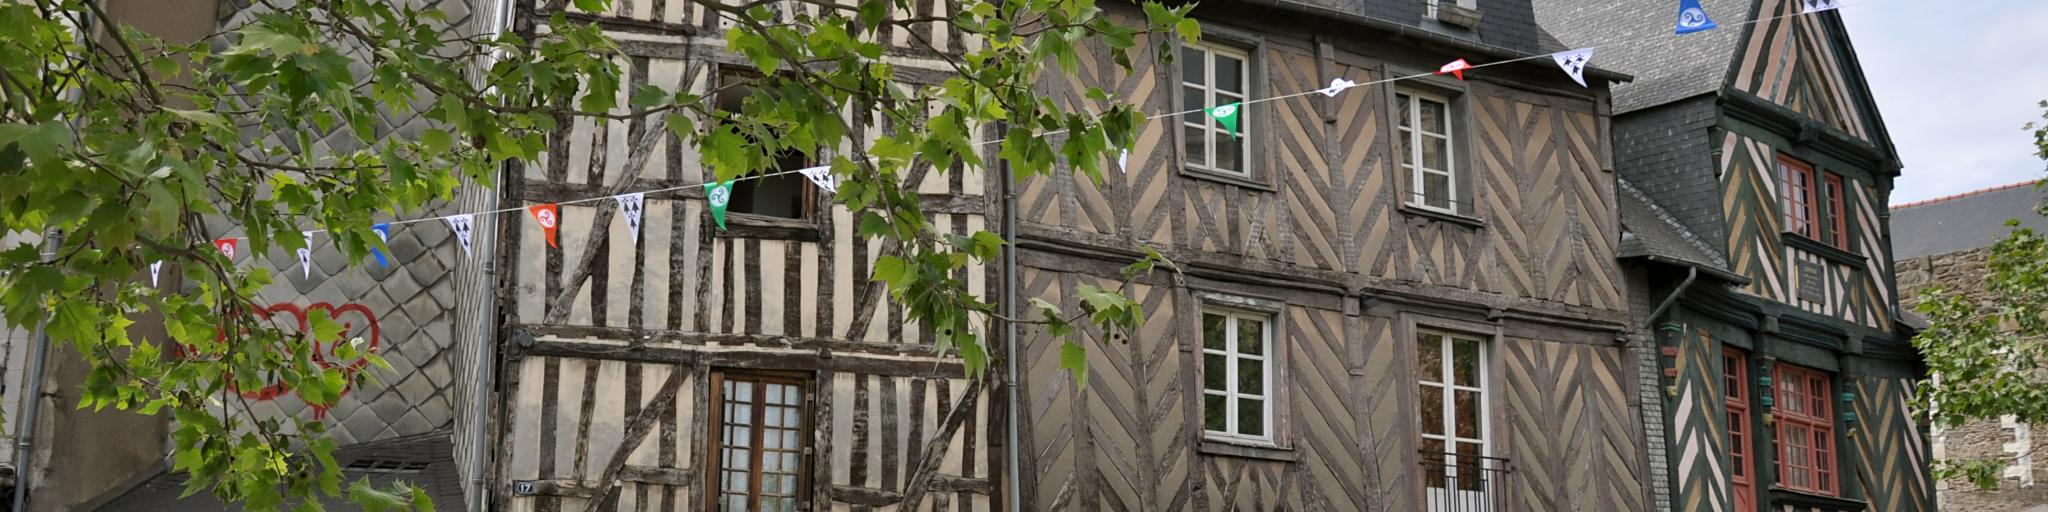 timbered houses in rennes france 2